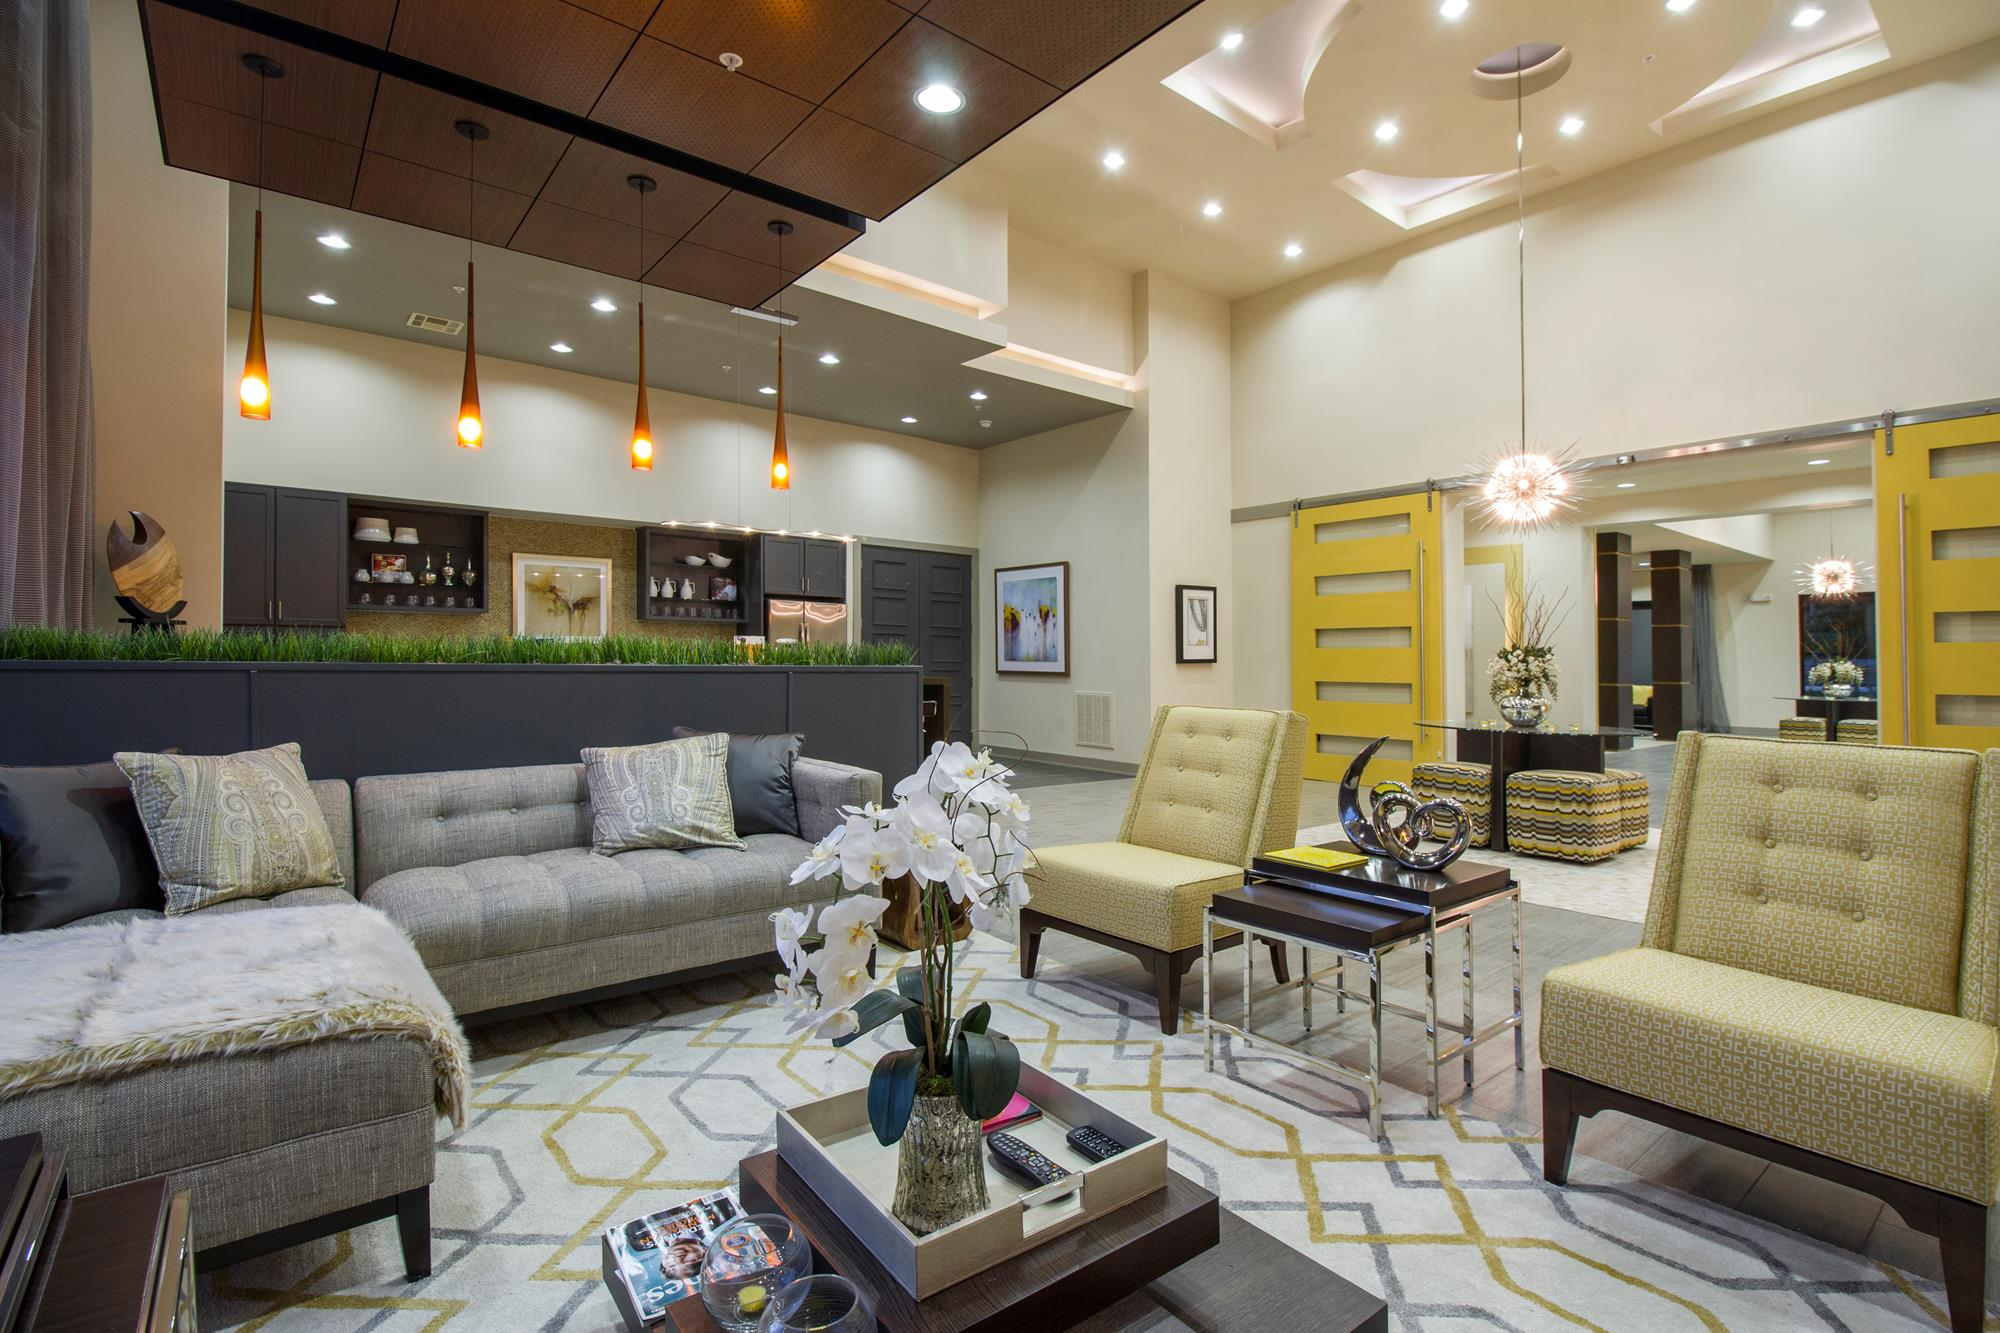 Resident Lounge and Gathering Room with Wi-Fi at The District, Baton Rouge, LA 70808